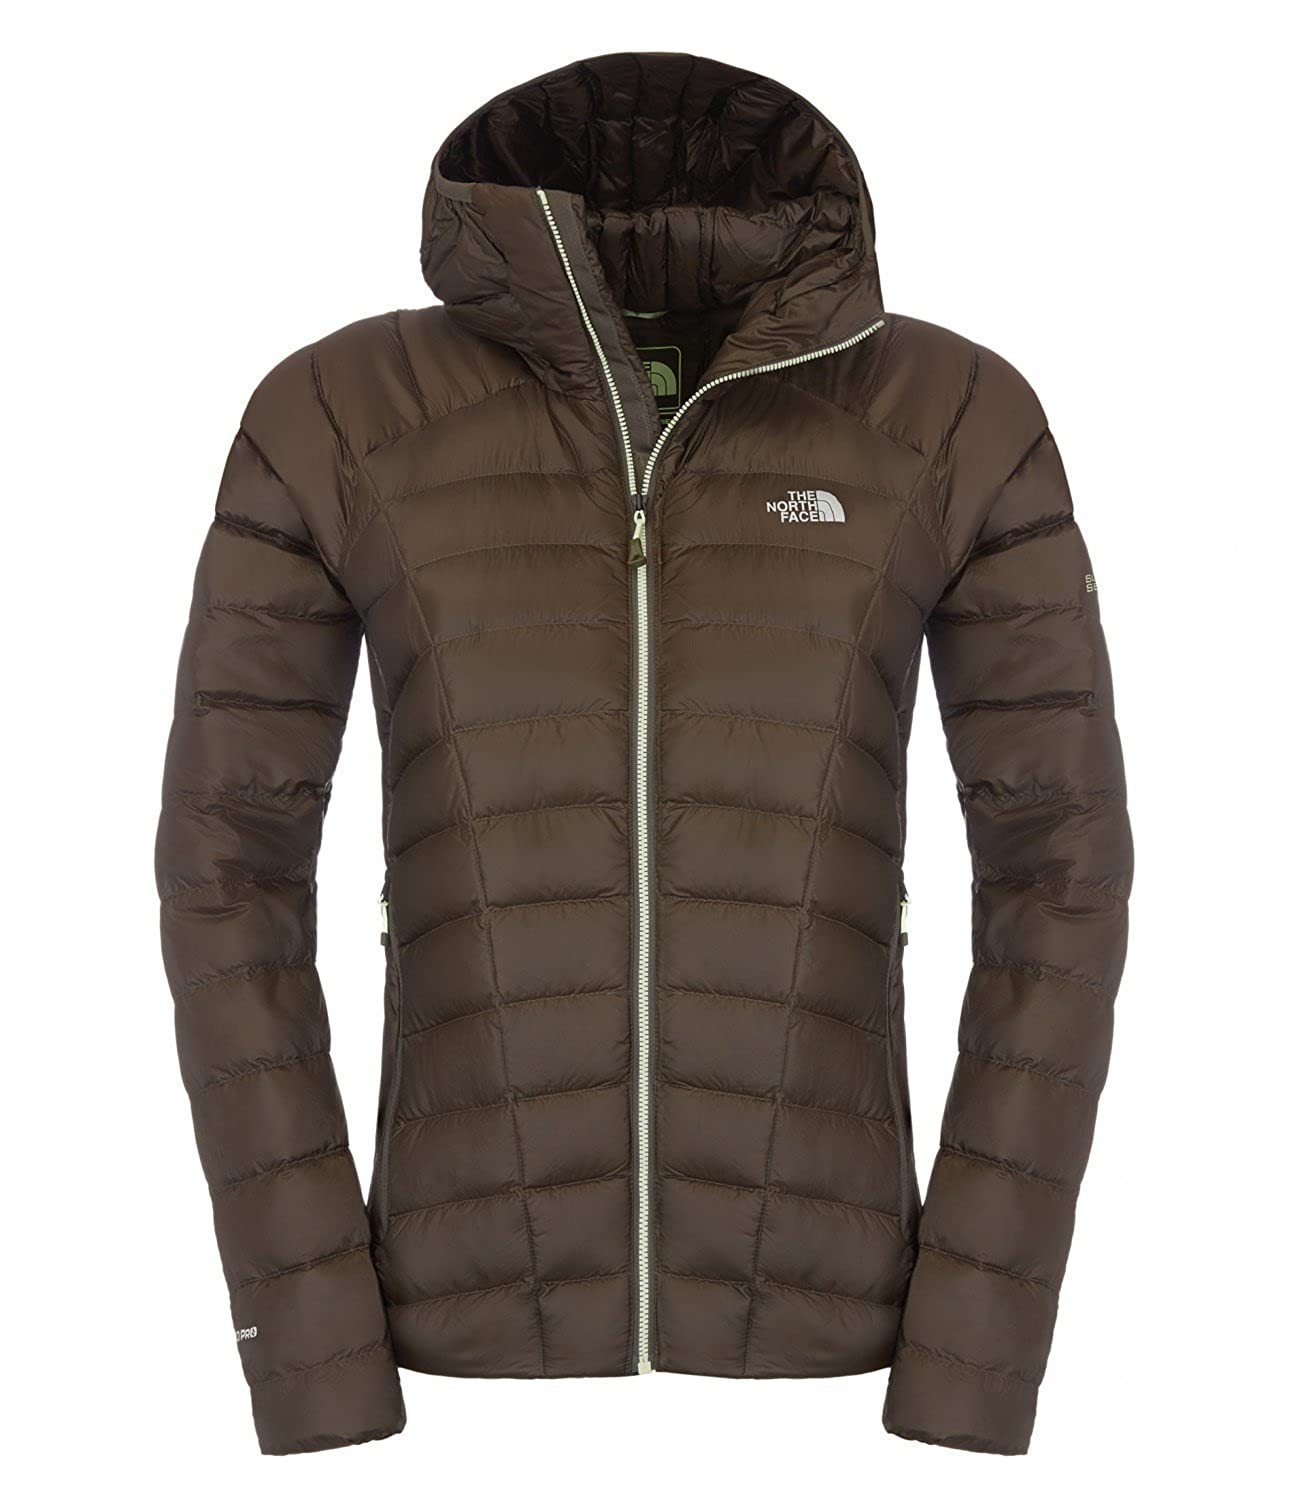 The North Face W Quince Pro Hooded Jacket black ink green günstig online kaufen